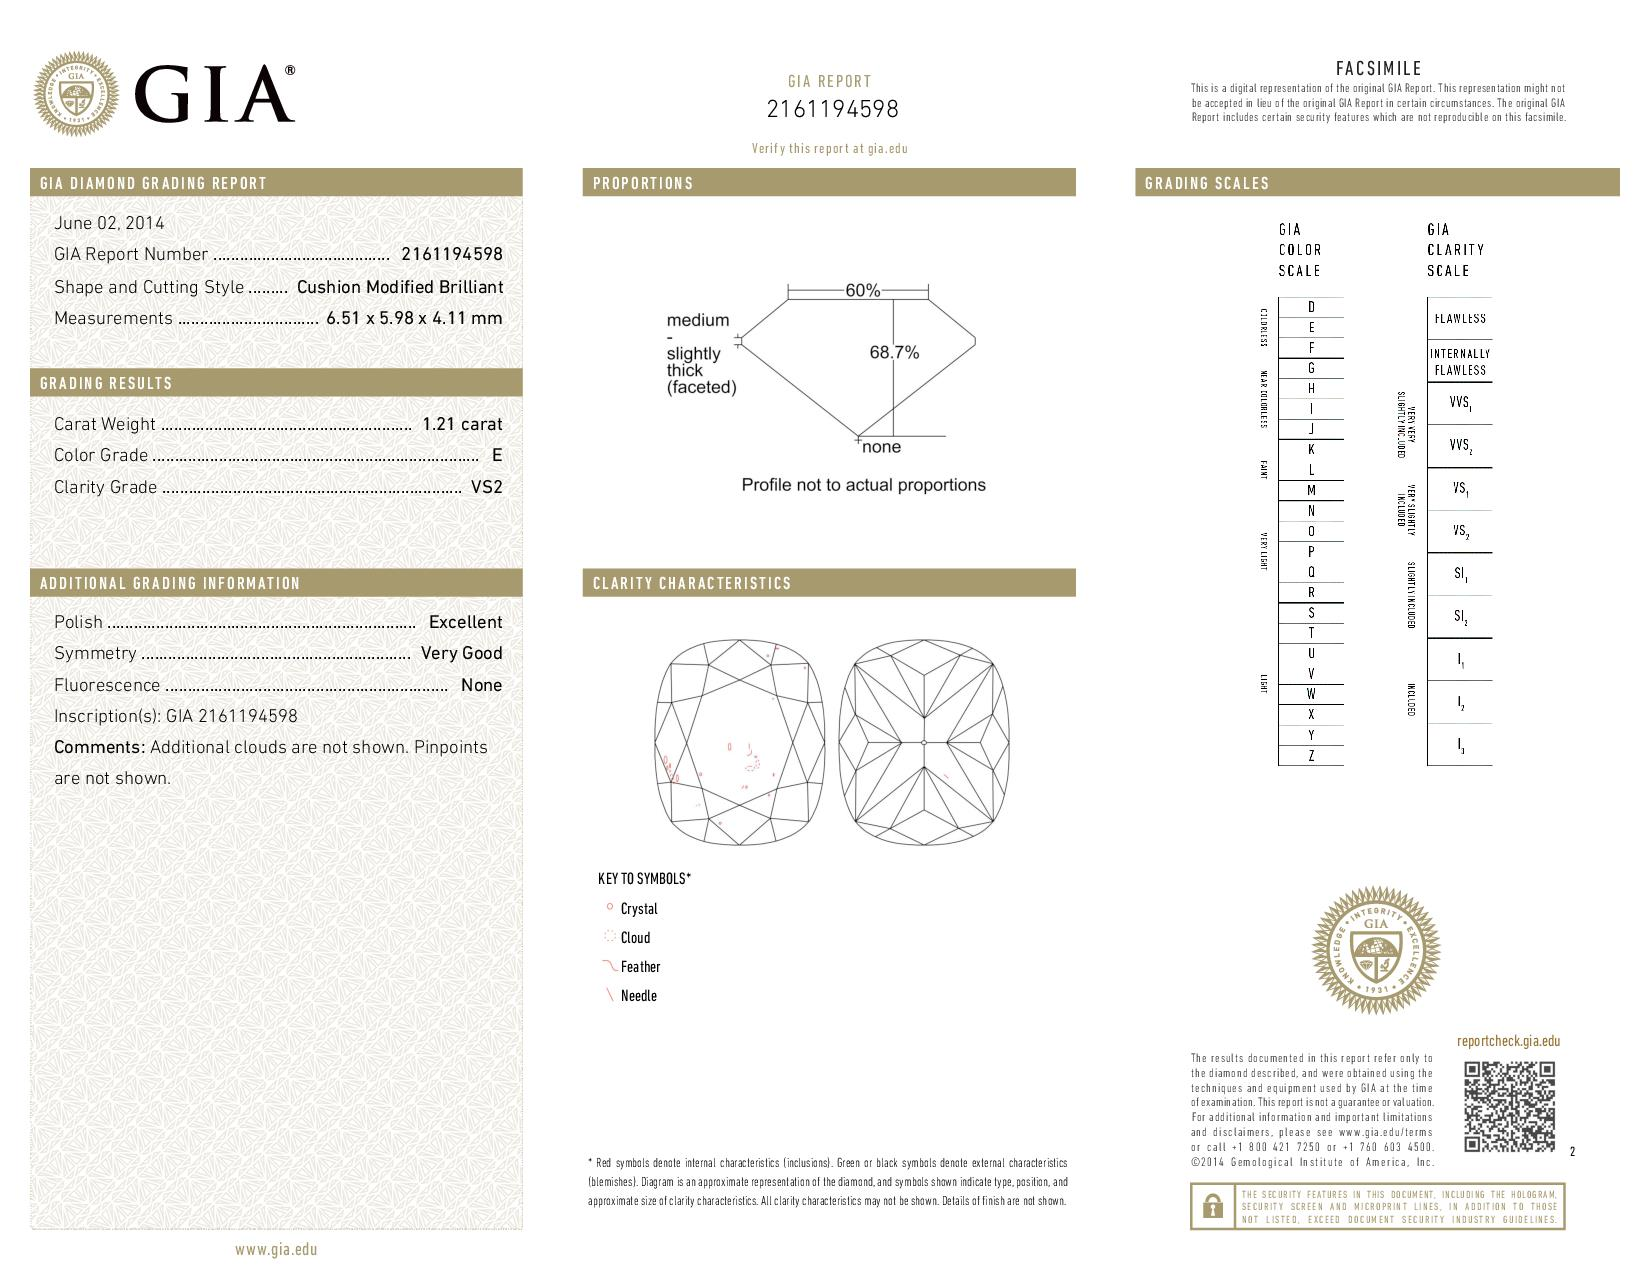 This is a 1.21 carat cushion shape, E color, VS2 clarity natural diamond accompanied by a GIA grading report.